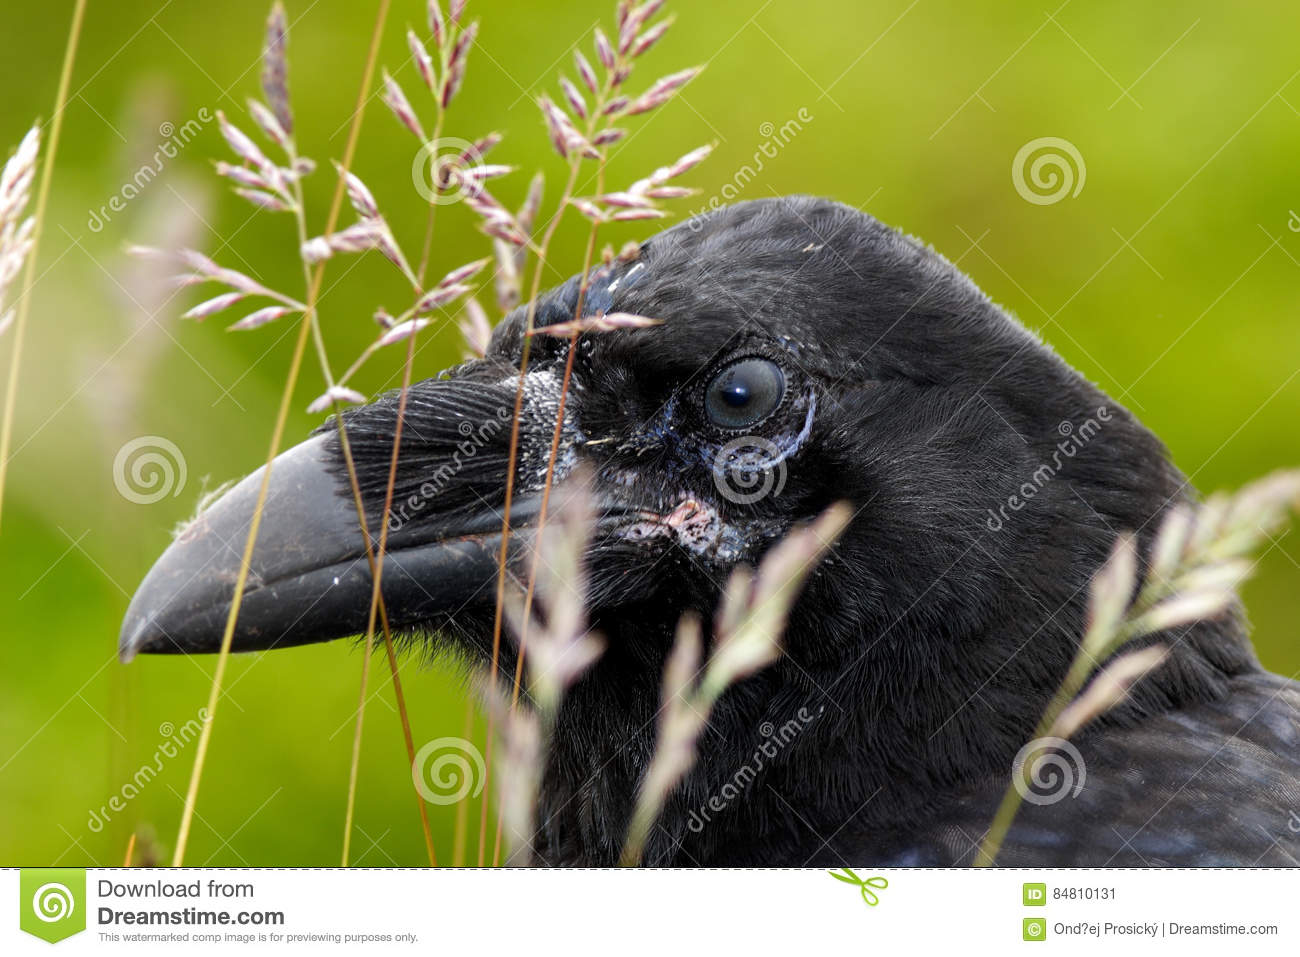 Detail portrait of raven hidden in grass. Black bird raven with open beak sitting on the meadow. Close-up of black bird with thick